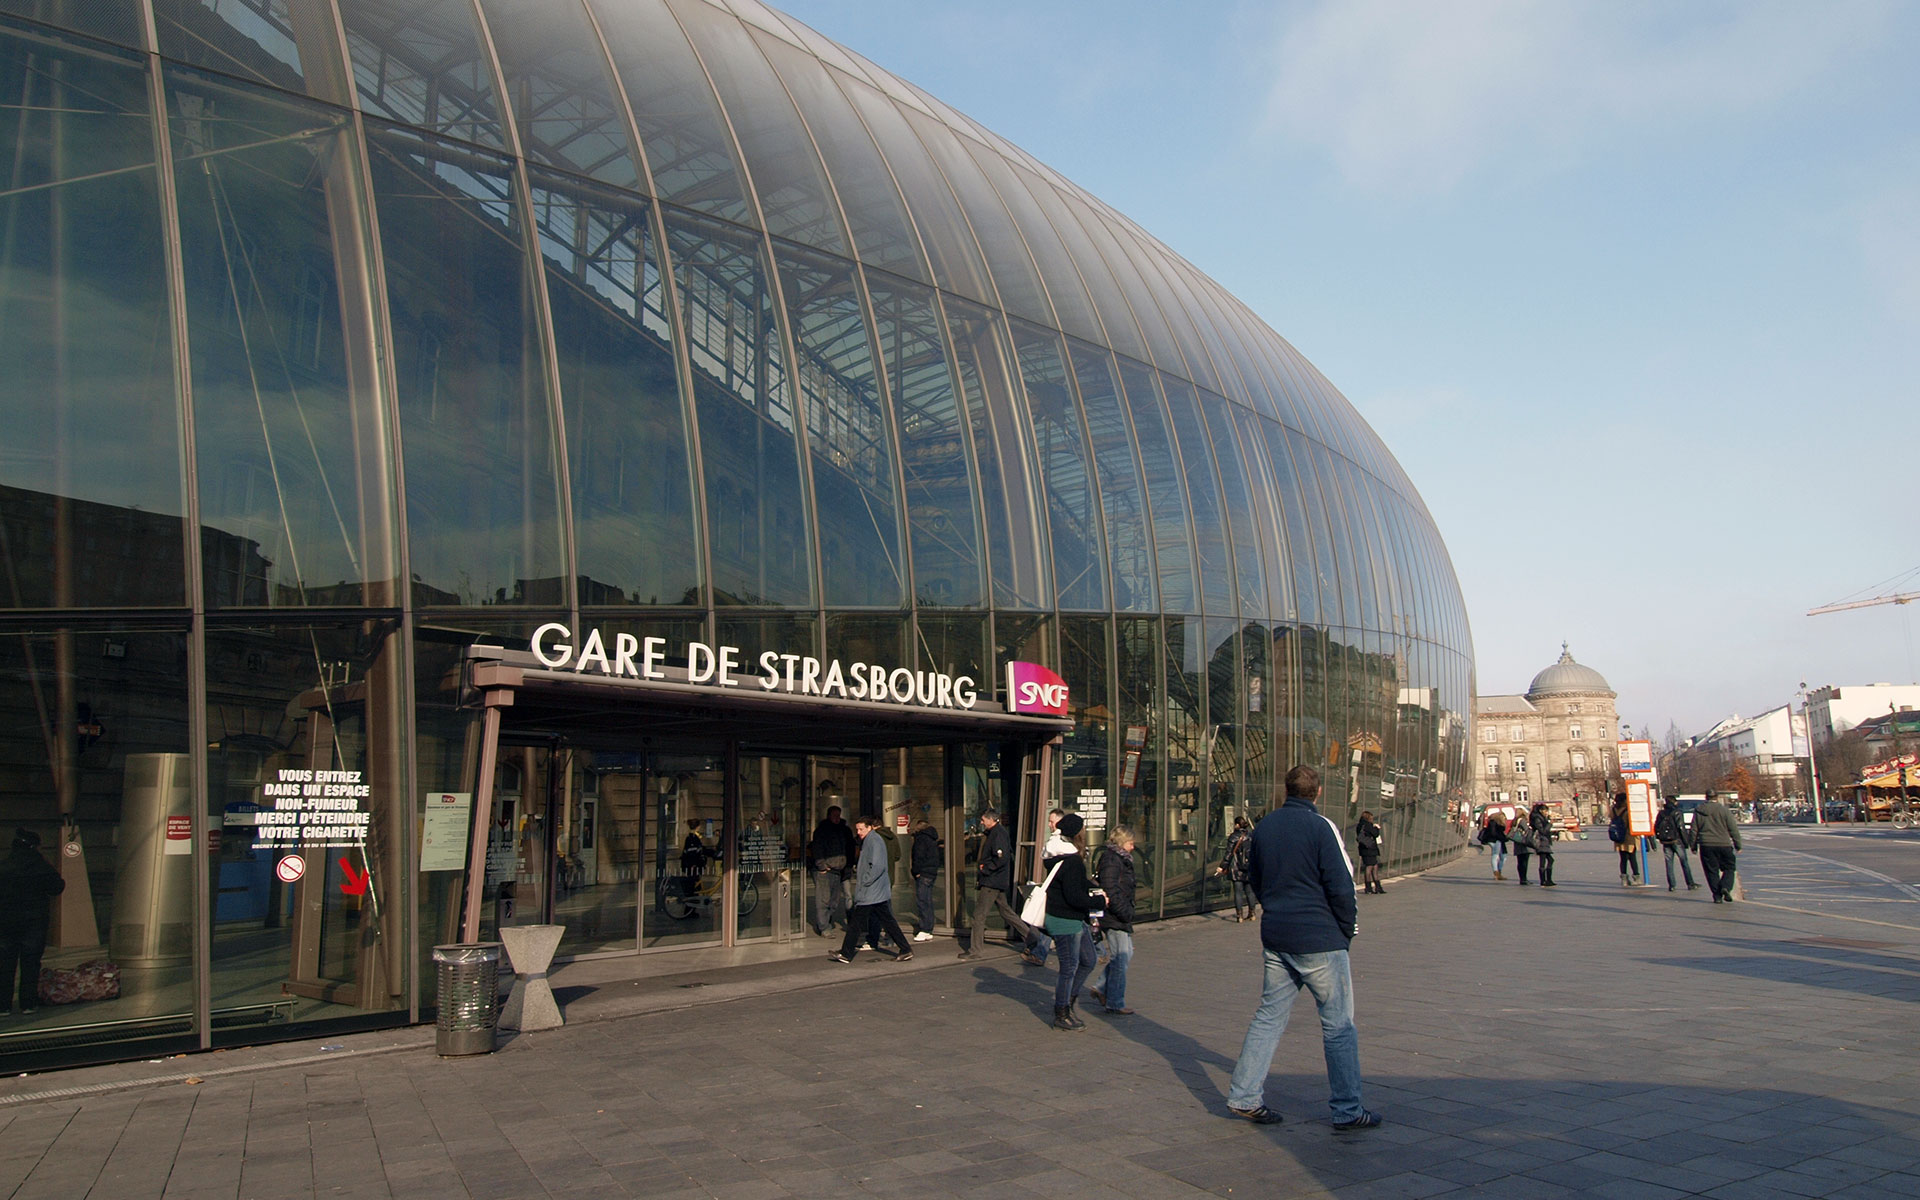 The Gare de Strasbourg, destination of a new high-speed service from Brussels which launches on 3 April 2016 (photo © hidden europe).